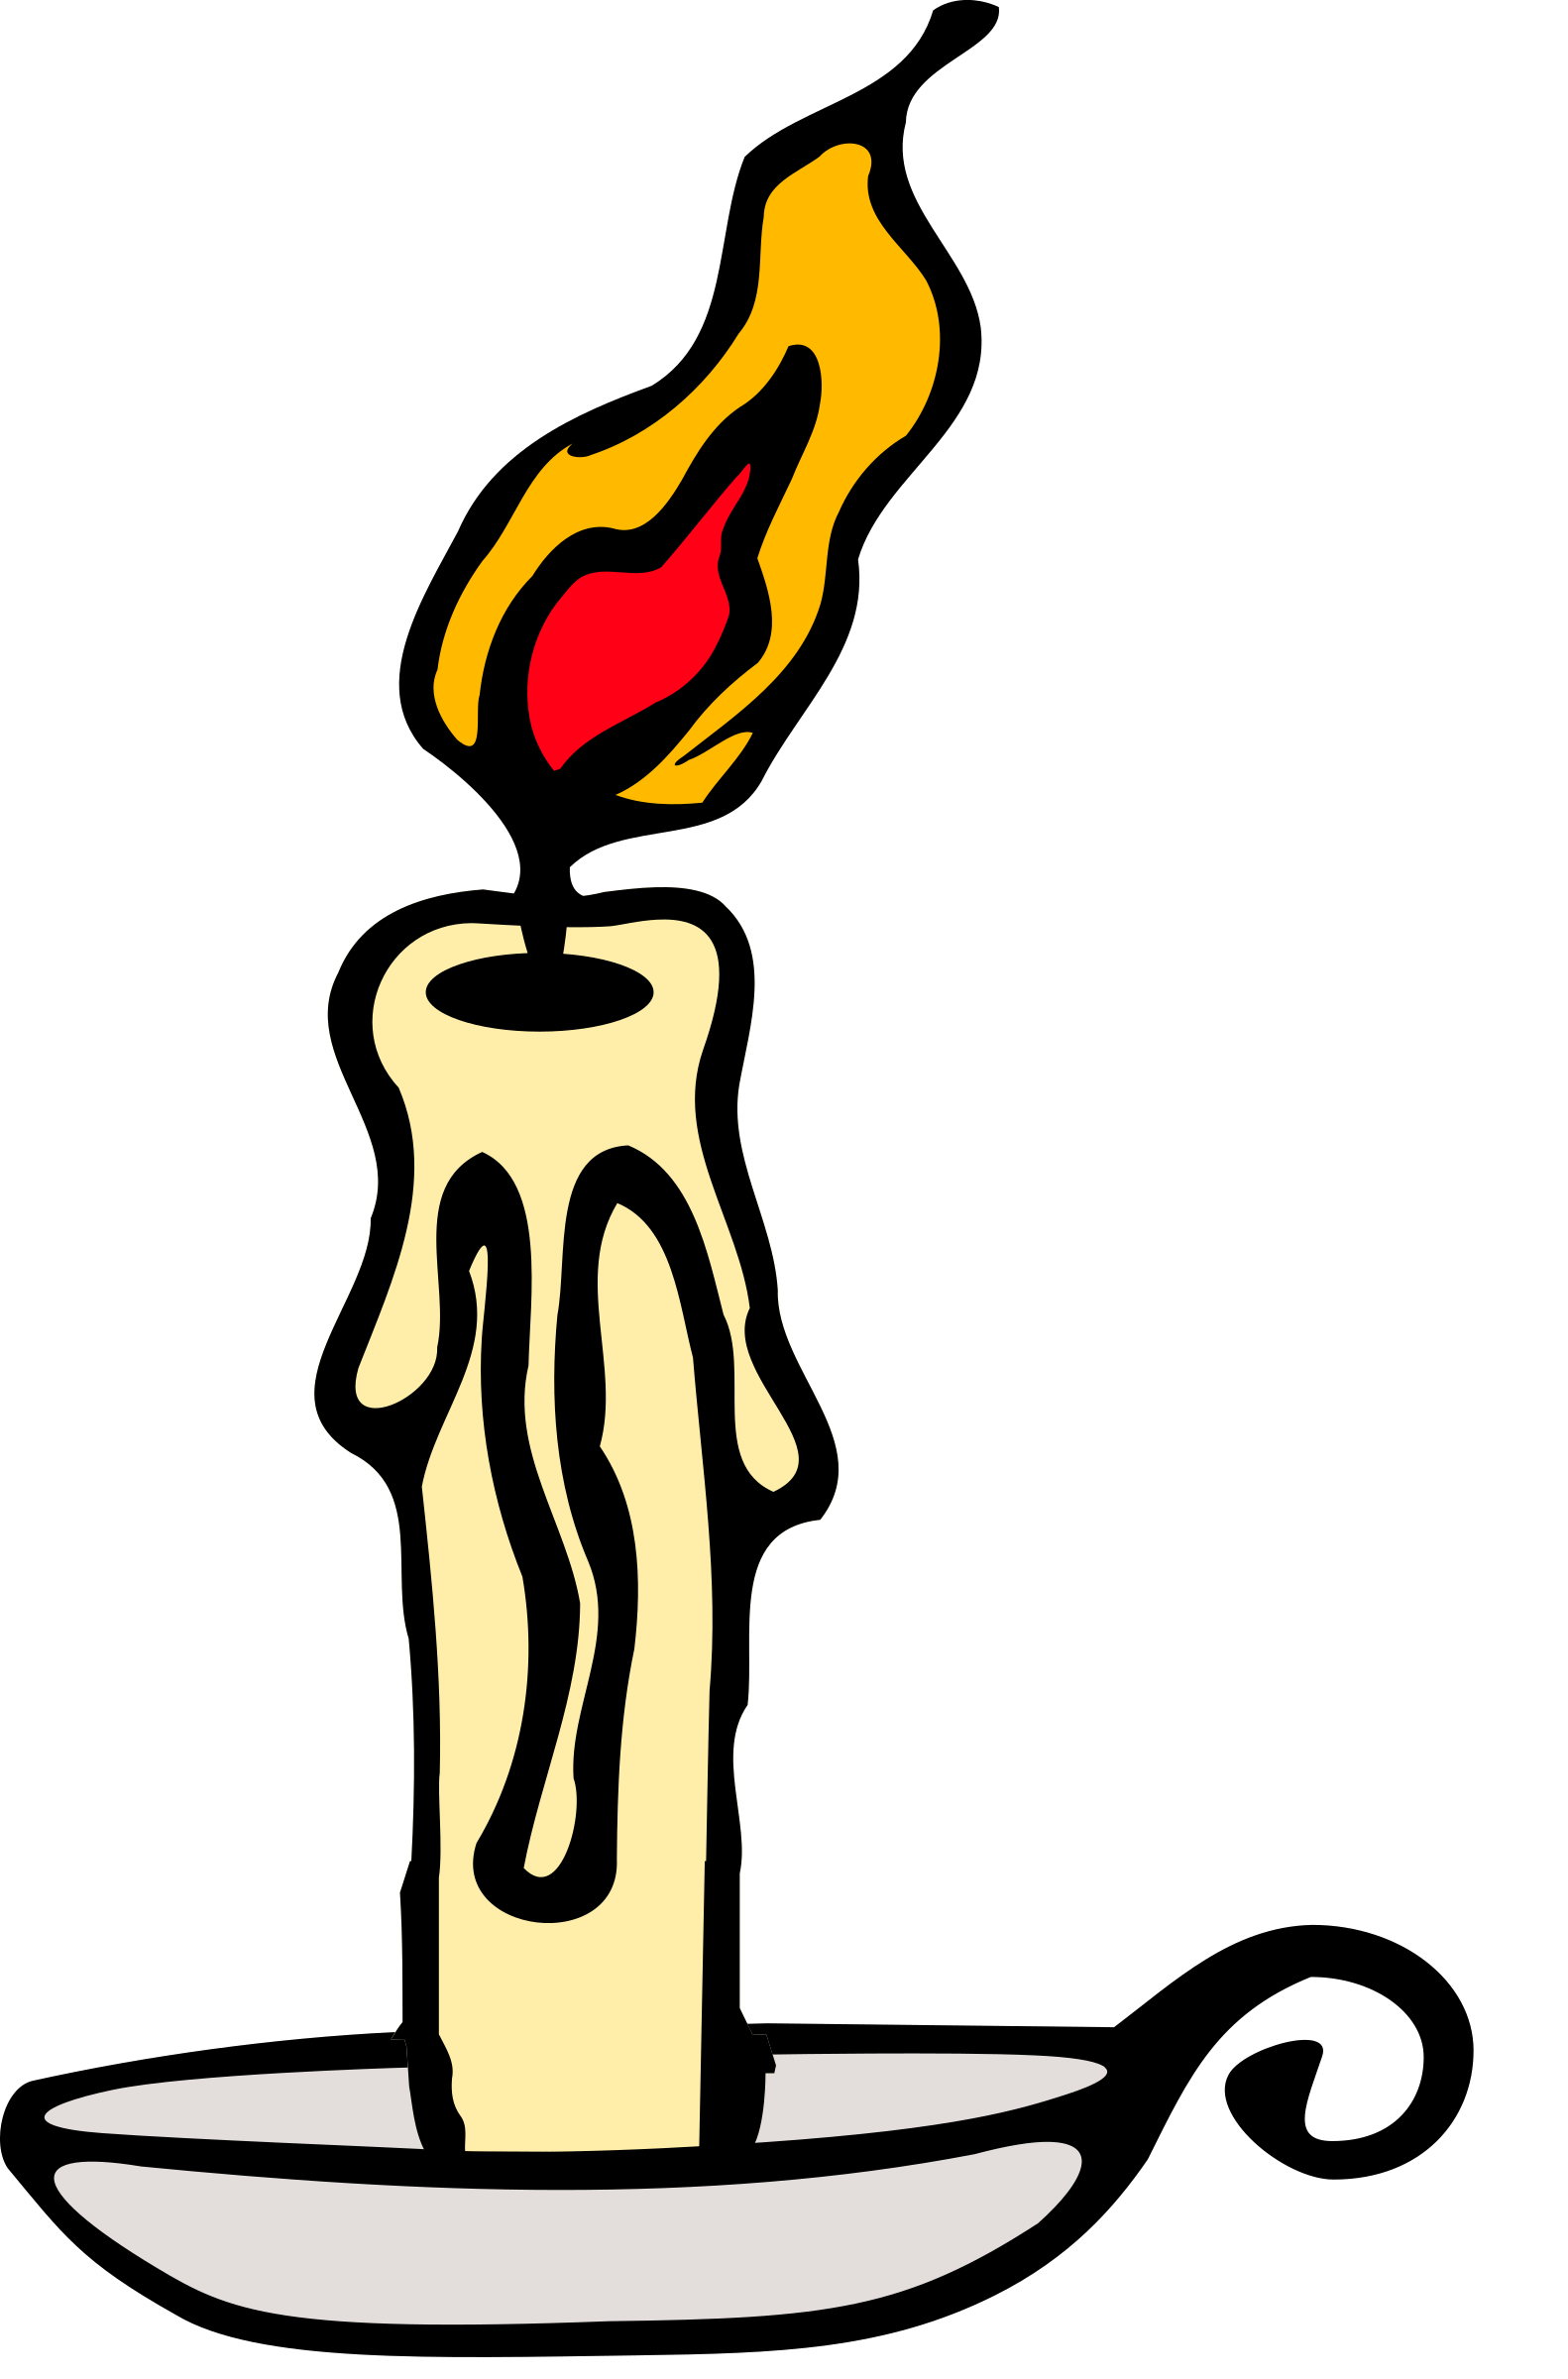 Drawing candle lighted. Burning bush clipart at